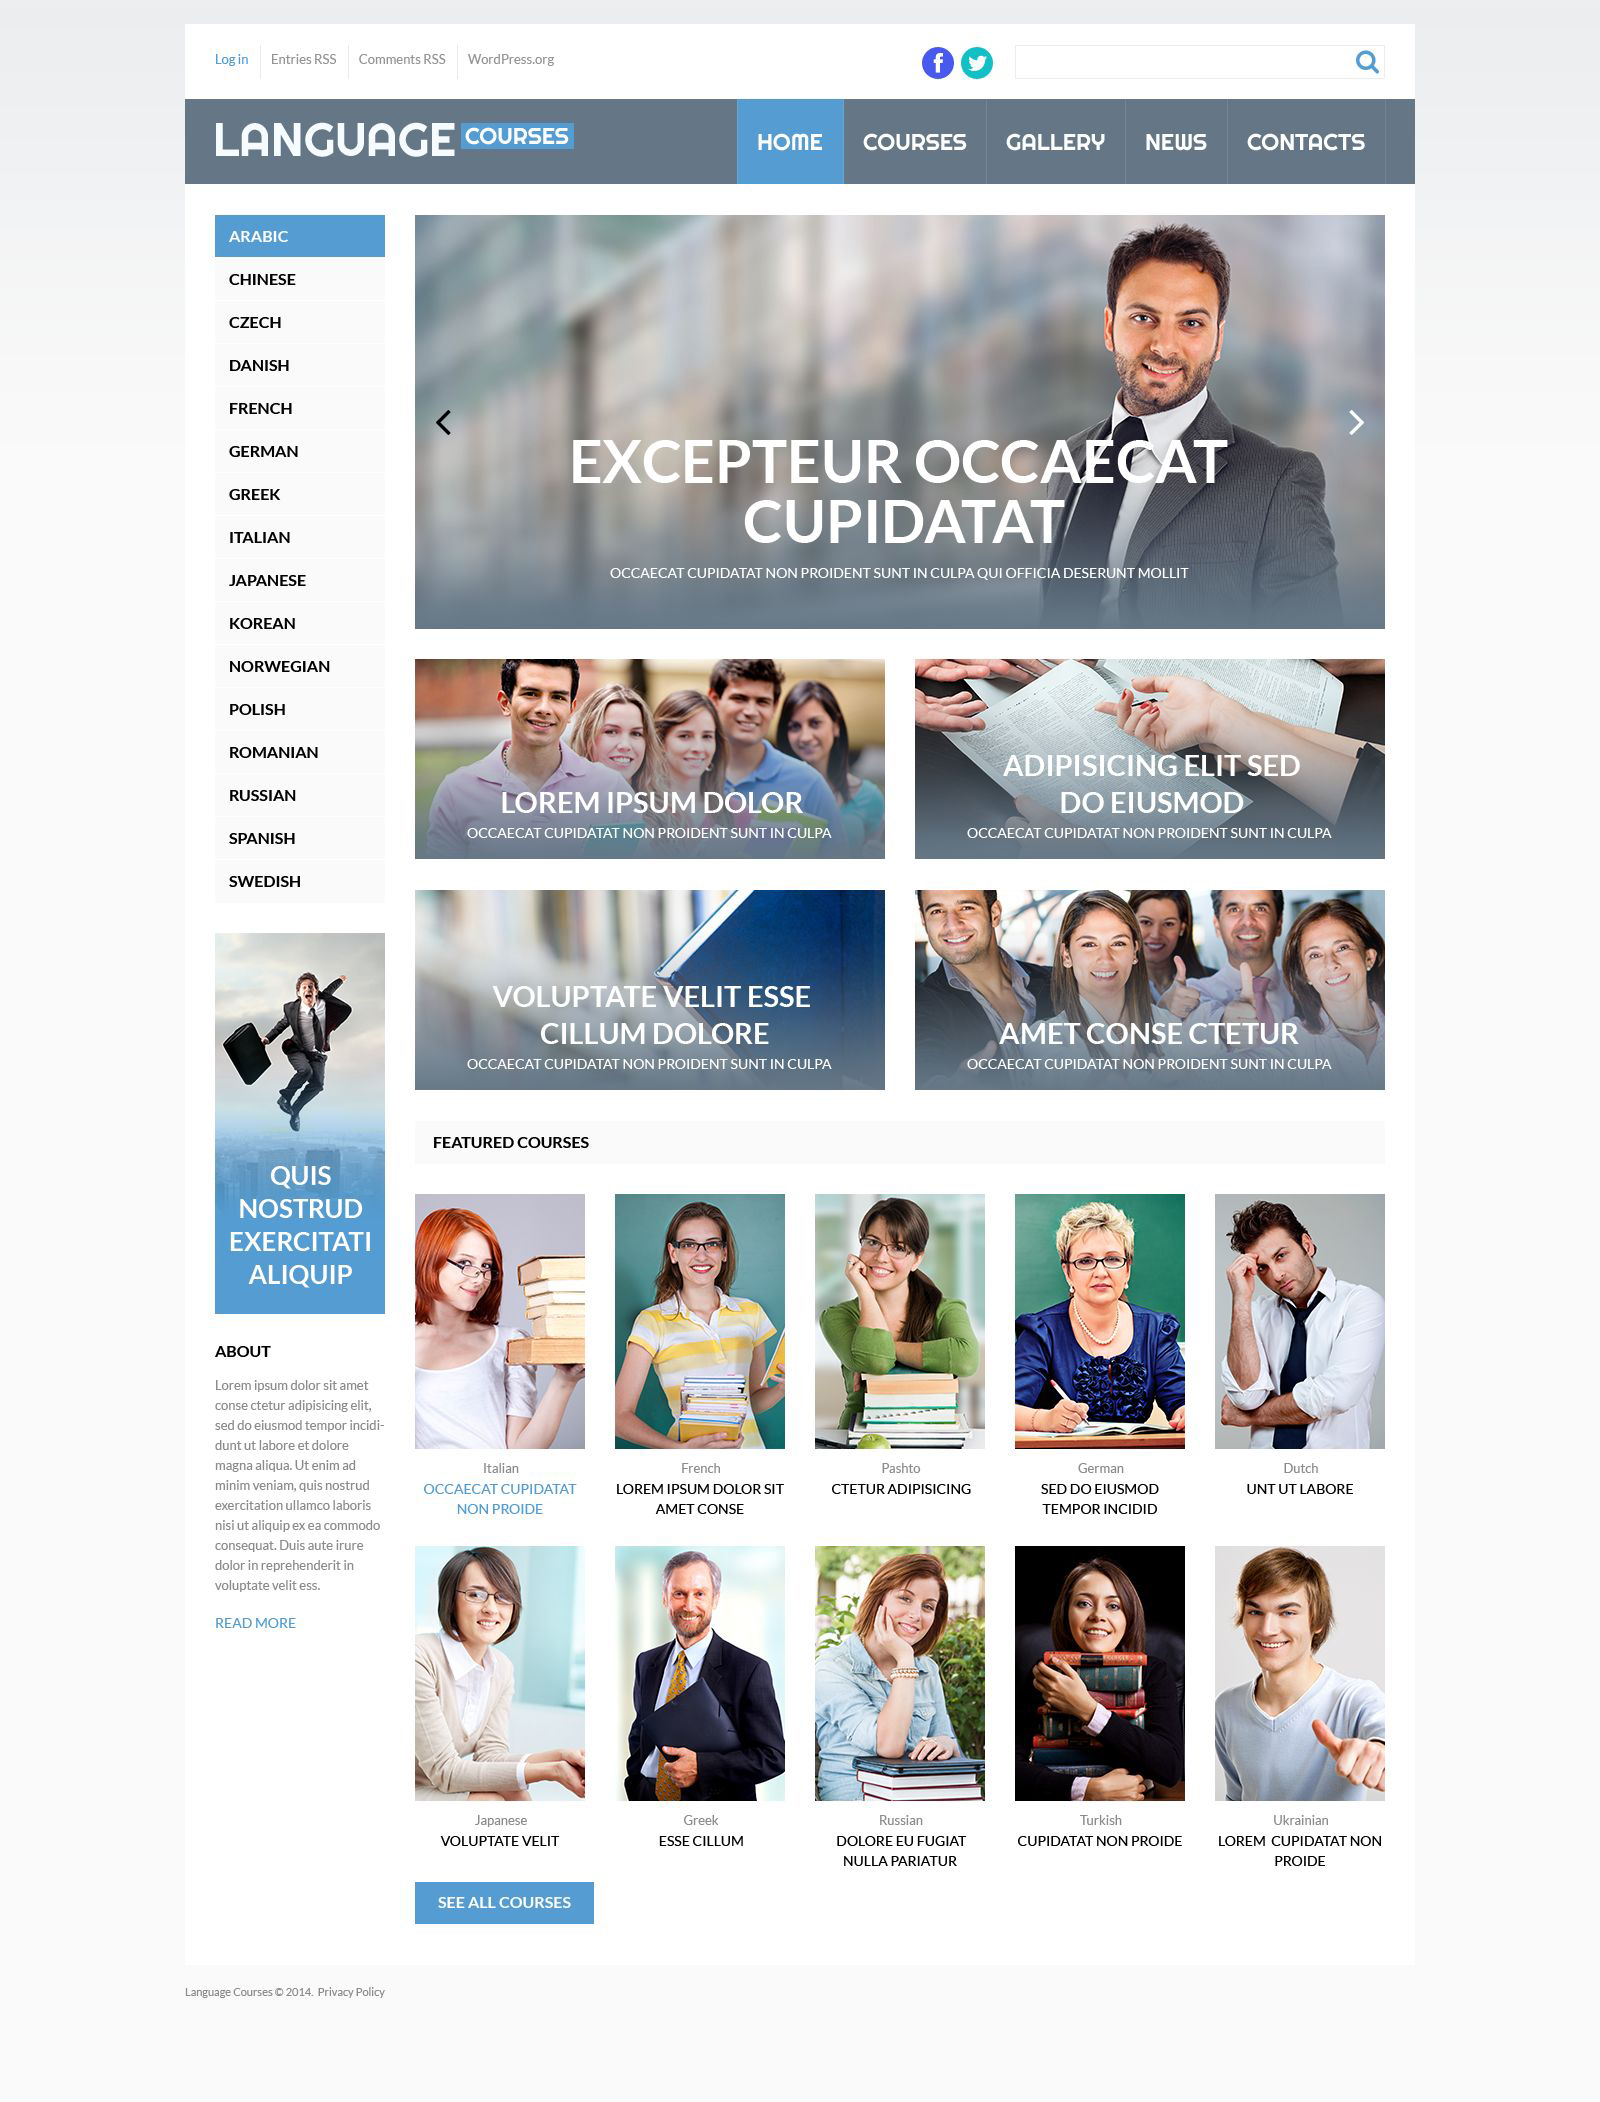 The Language Pro Center WordPress Design 53258, one of the best WordPress themes of its kind (science, most popular), also known as language pro center WordPress template, classes WordPress template, learning WordPress template, foreign WordPress template, teaching WordPress template, course WordPress template, teacher WordPress template, student WordPress template, education WordPress template, students WordPress template, admissions WordPress template, academic WordPress template, courses WordPress template, linguistics WordPress template, terms WordPress template, terminology WordPress template, speech WordPress template, communication WordPress template, spoken WordPress template, language WordPress template, translations WordPress template, training WordPress template, skills WordPress template, knowledge WordPress template, style WordPress template, internationa and related with language pro center, classes, learning, foreign, teaching, course, teacher, student, education, students, admissions, academic, courses, linguistics, terms, terminology, speech, communication, spoken, language, translations, training, skills, knowledge, style, internationa, etc.